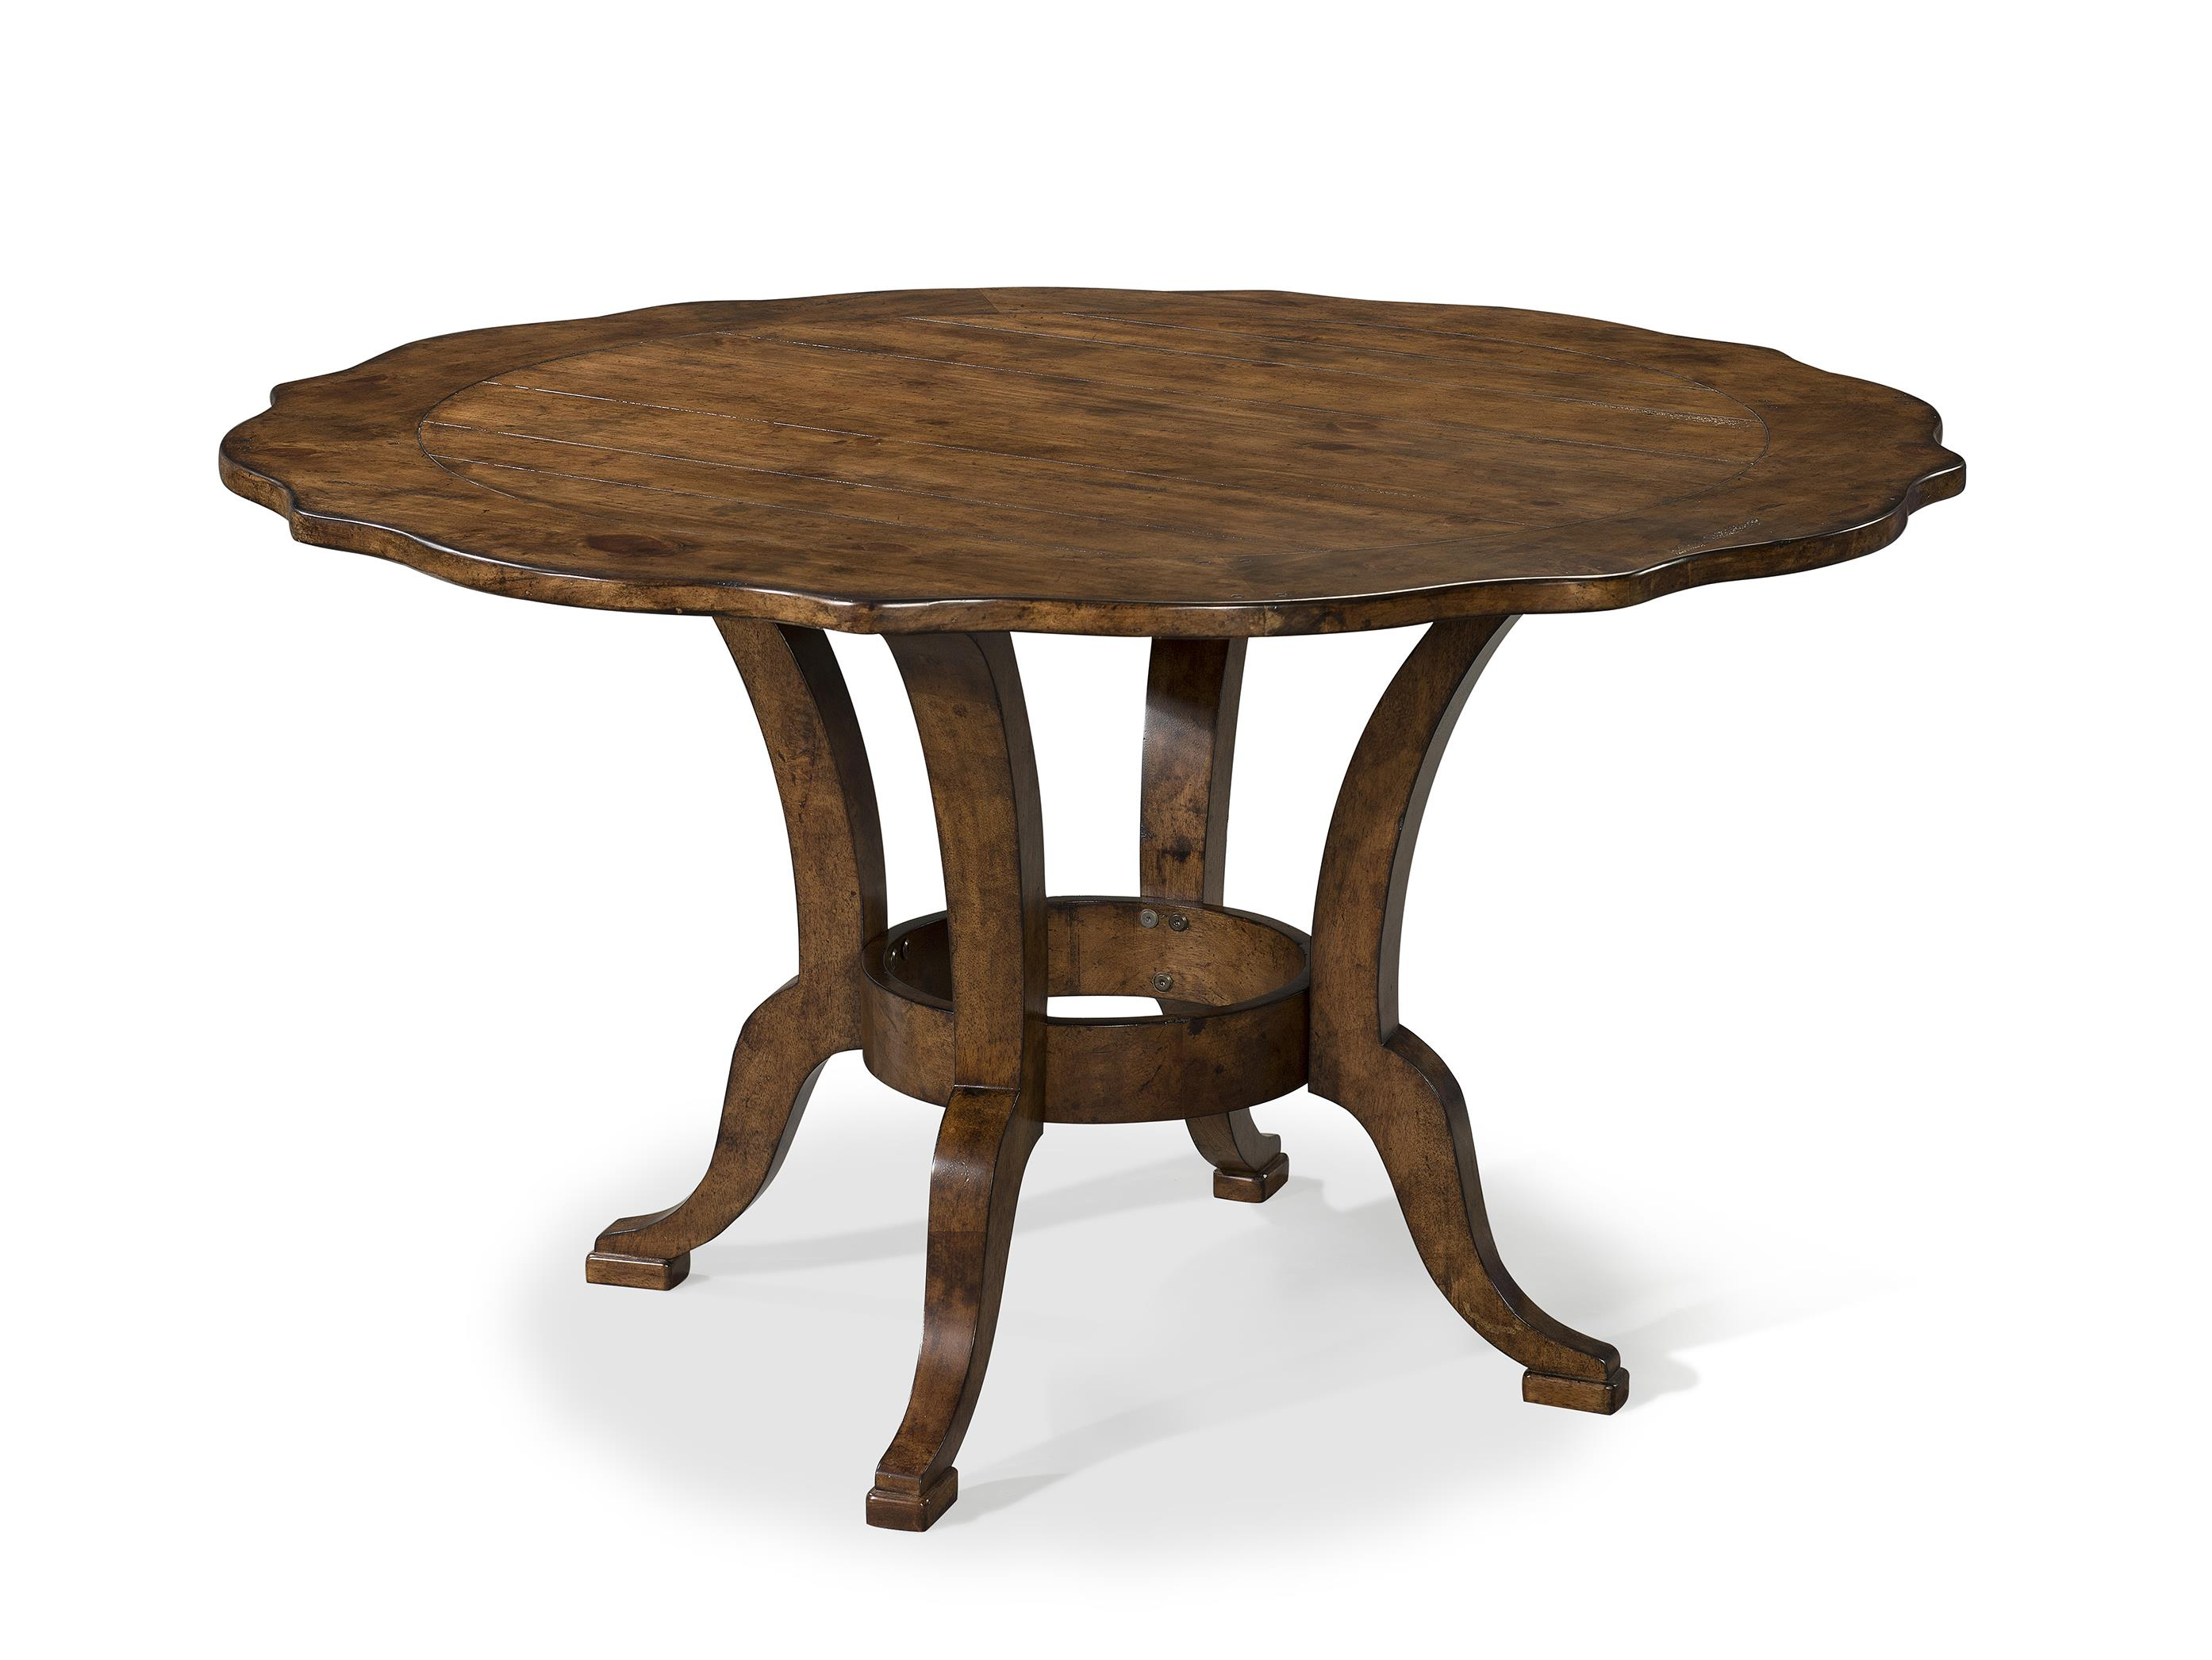 Easton Collection Farmhouse 54 Inch Round Dining Table - Item Number: 436-054 DRT